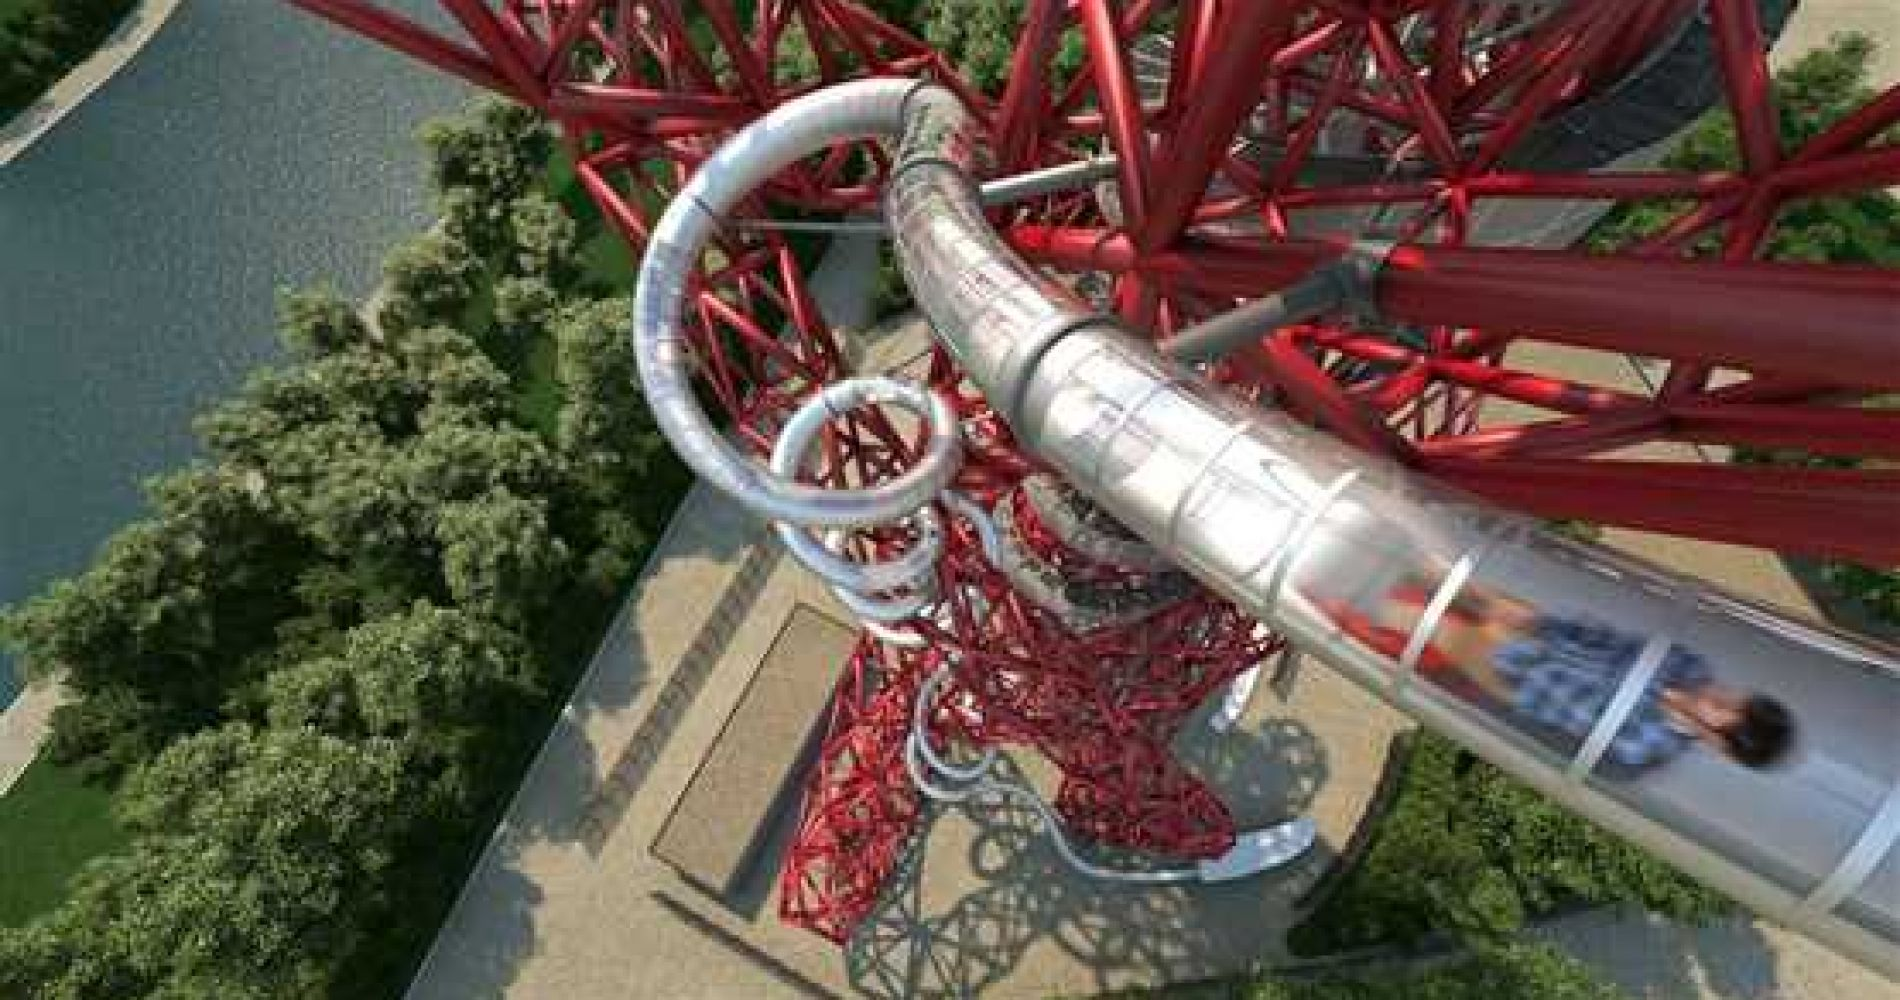 The Slide at ArcelorMittal Orbit and Bottle of Prosecco for Two